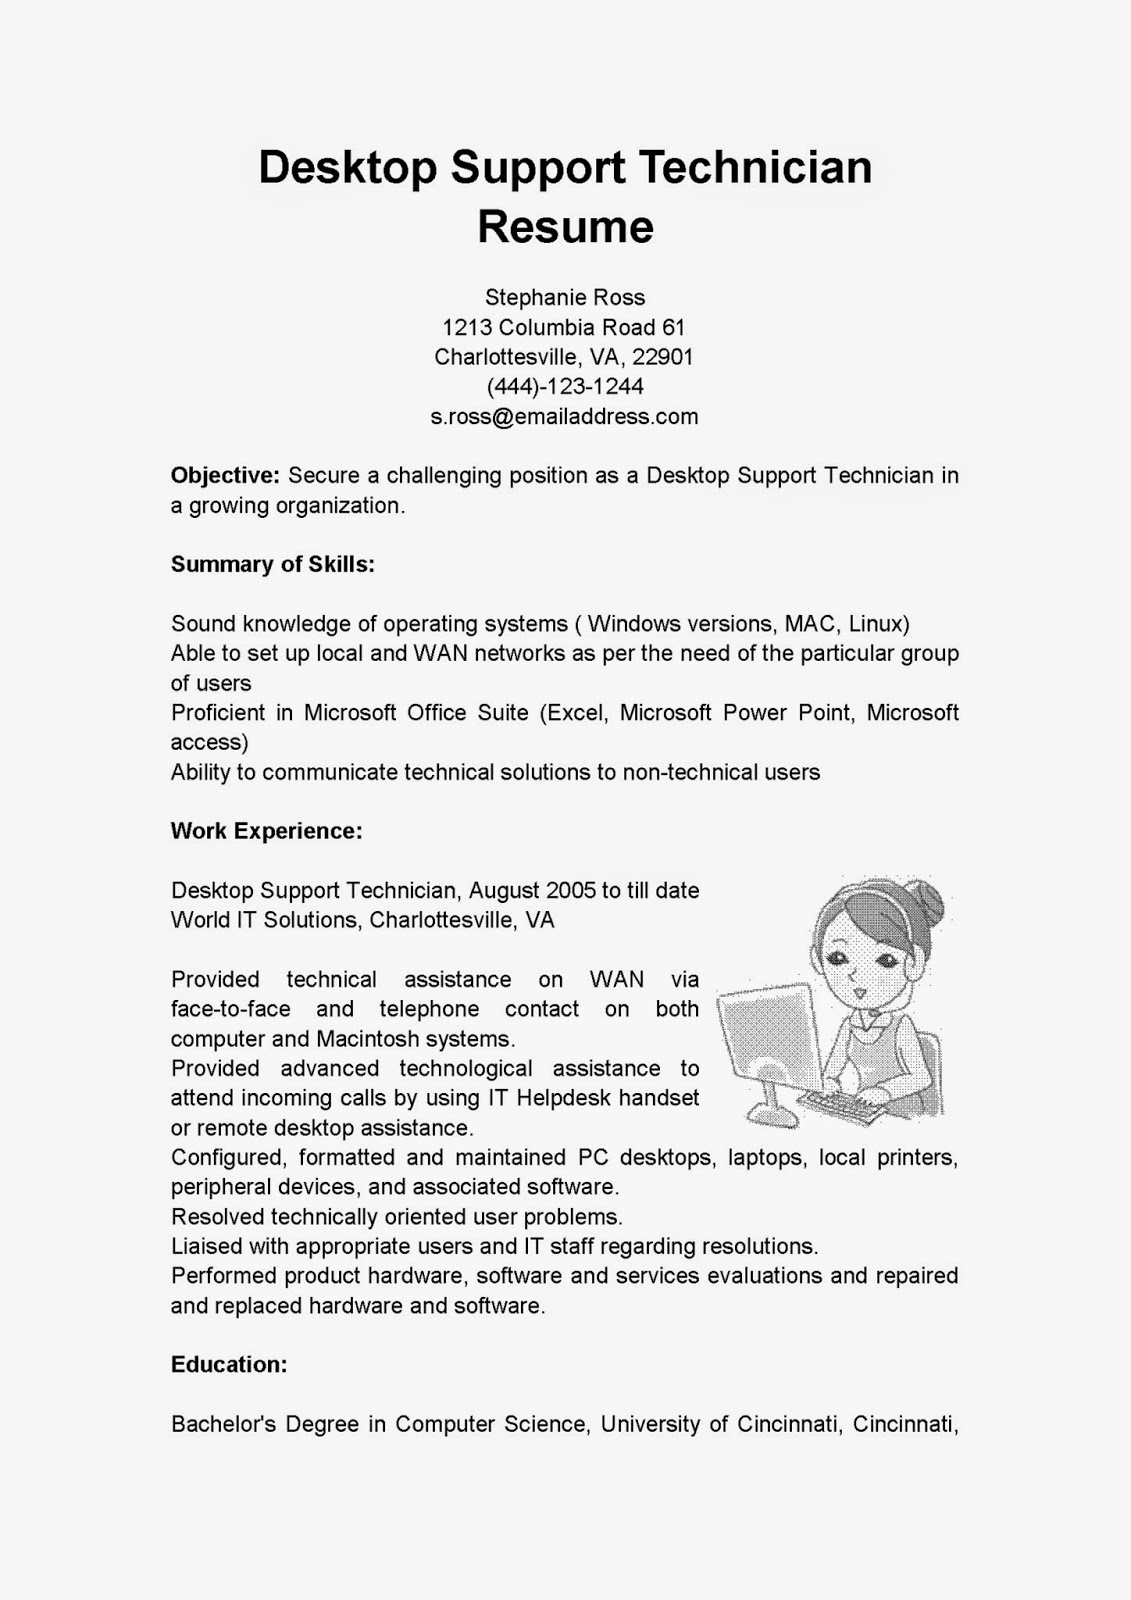 resume sles desktop support technician resume sle